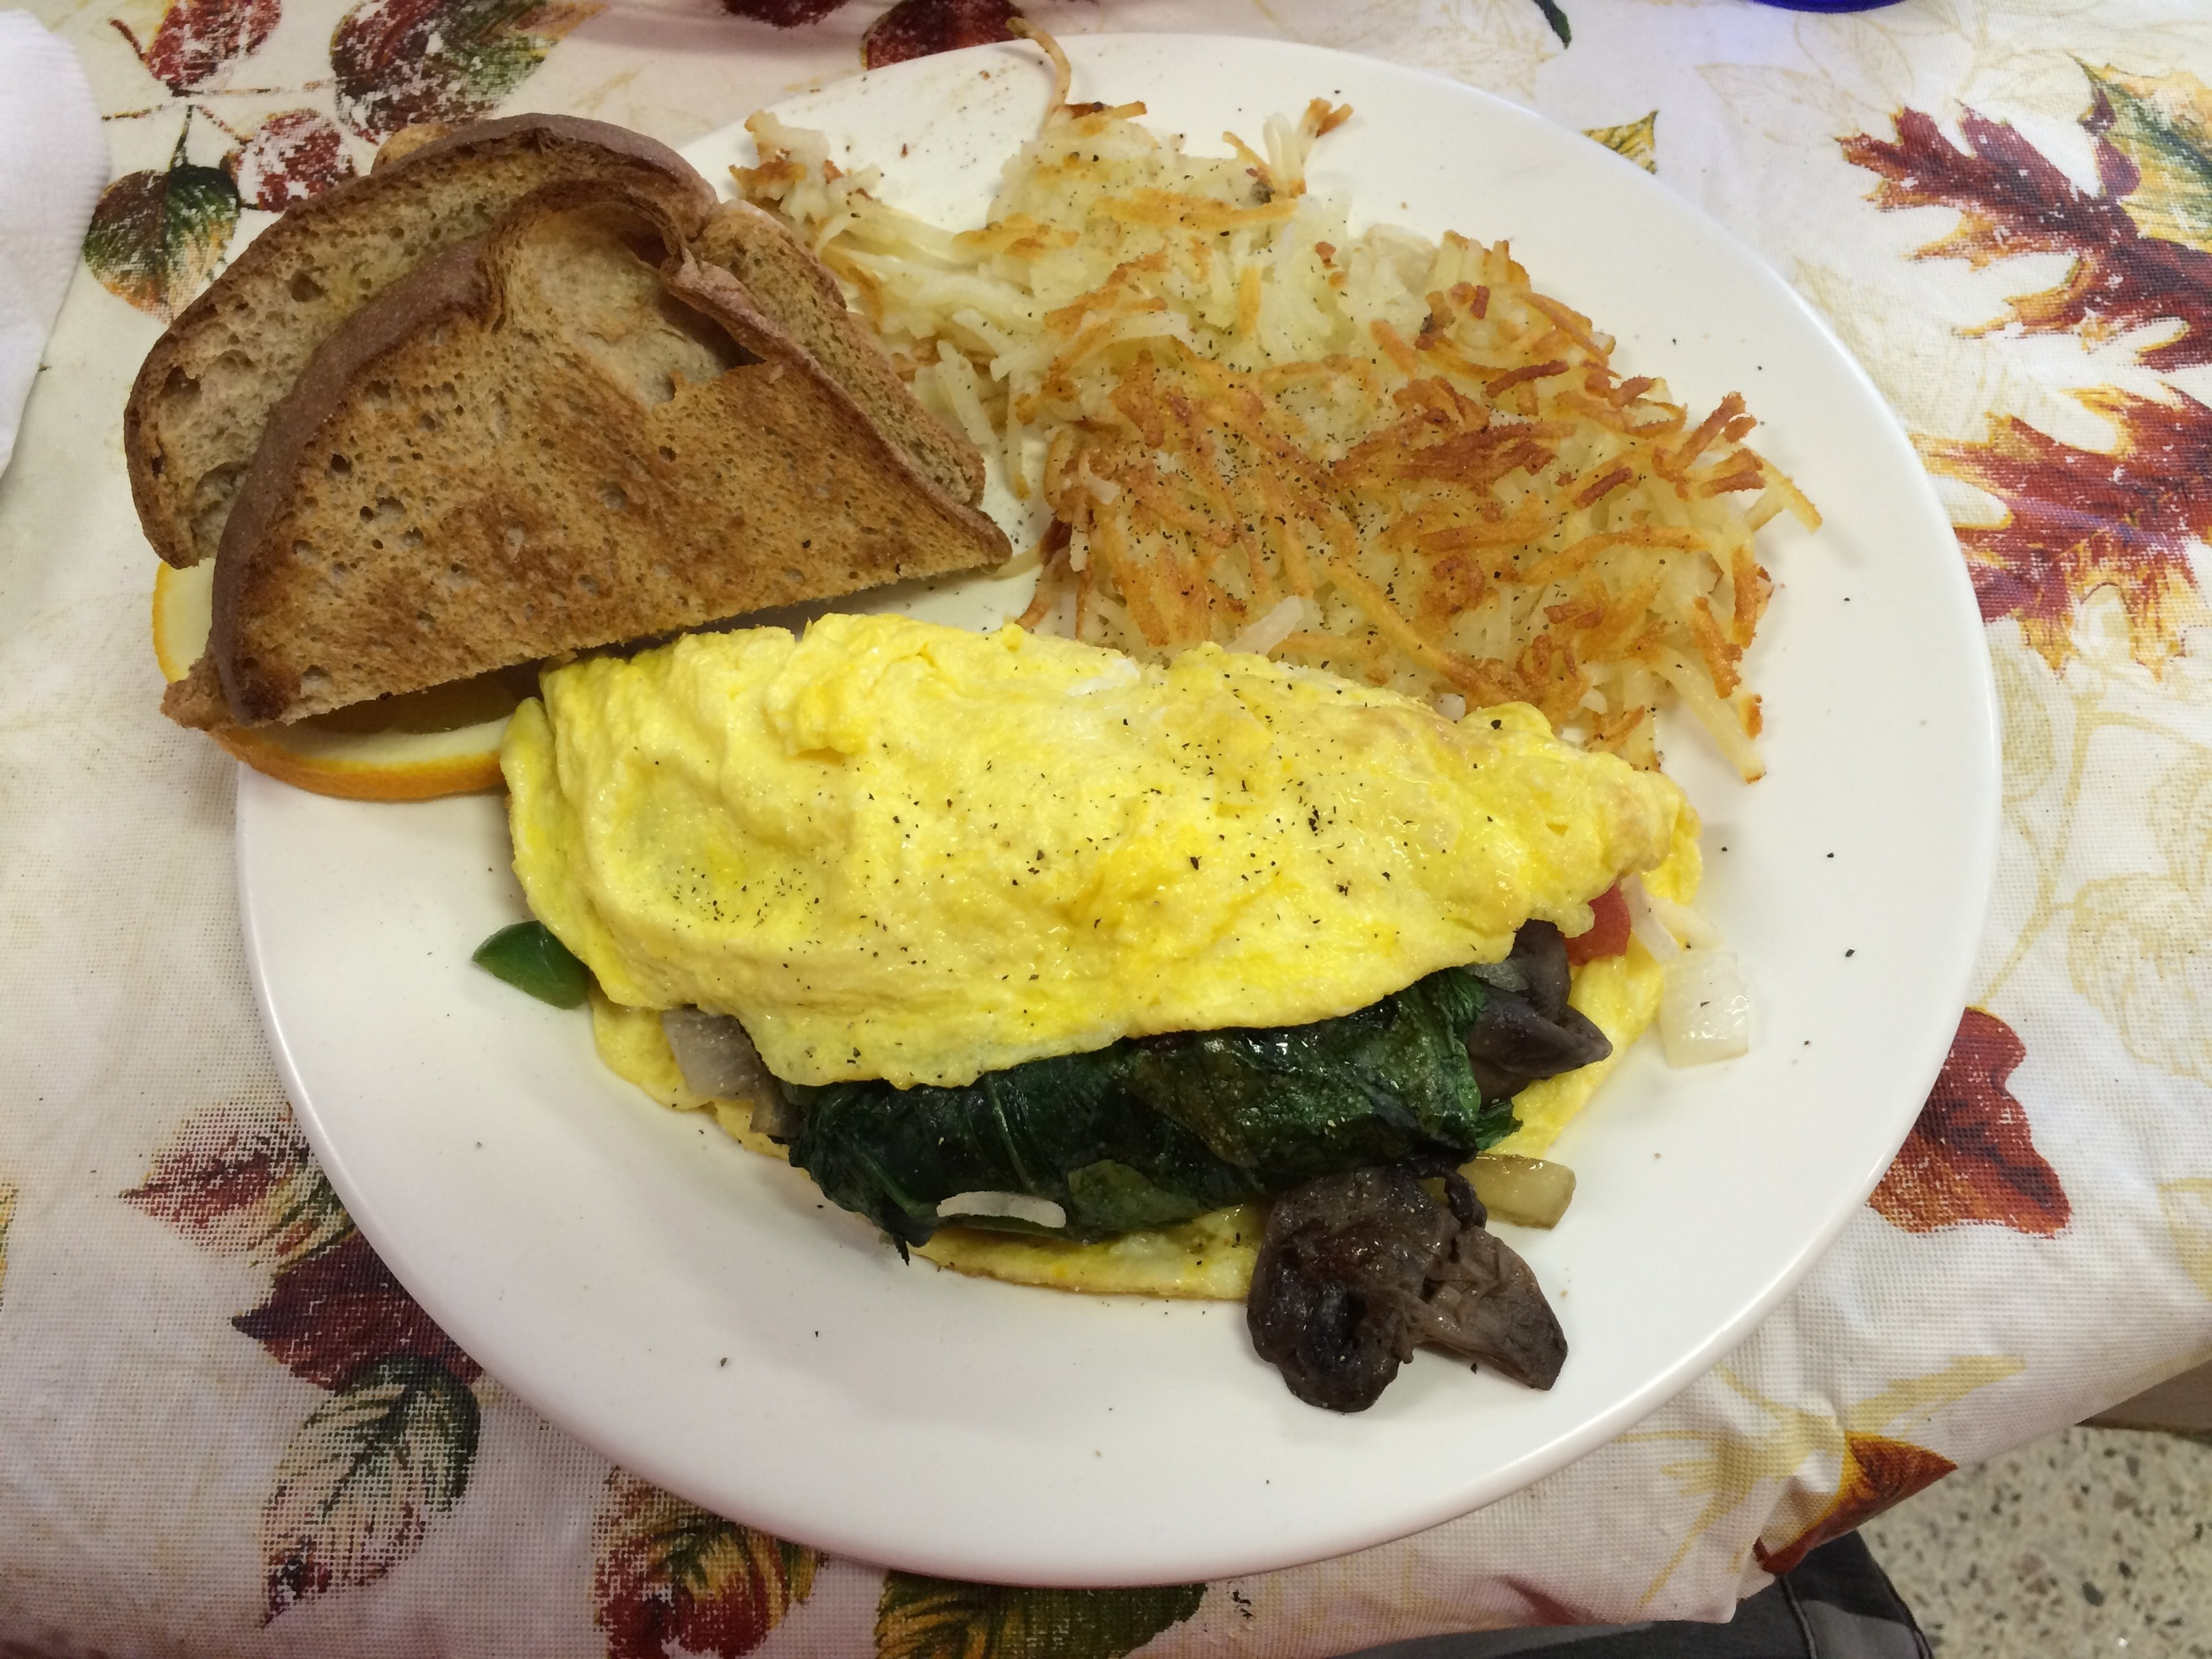 Awesome veggie omelette!